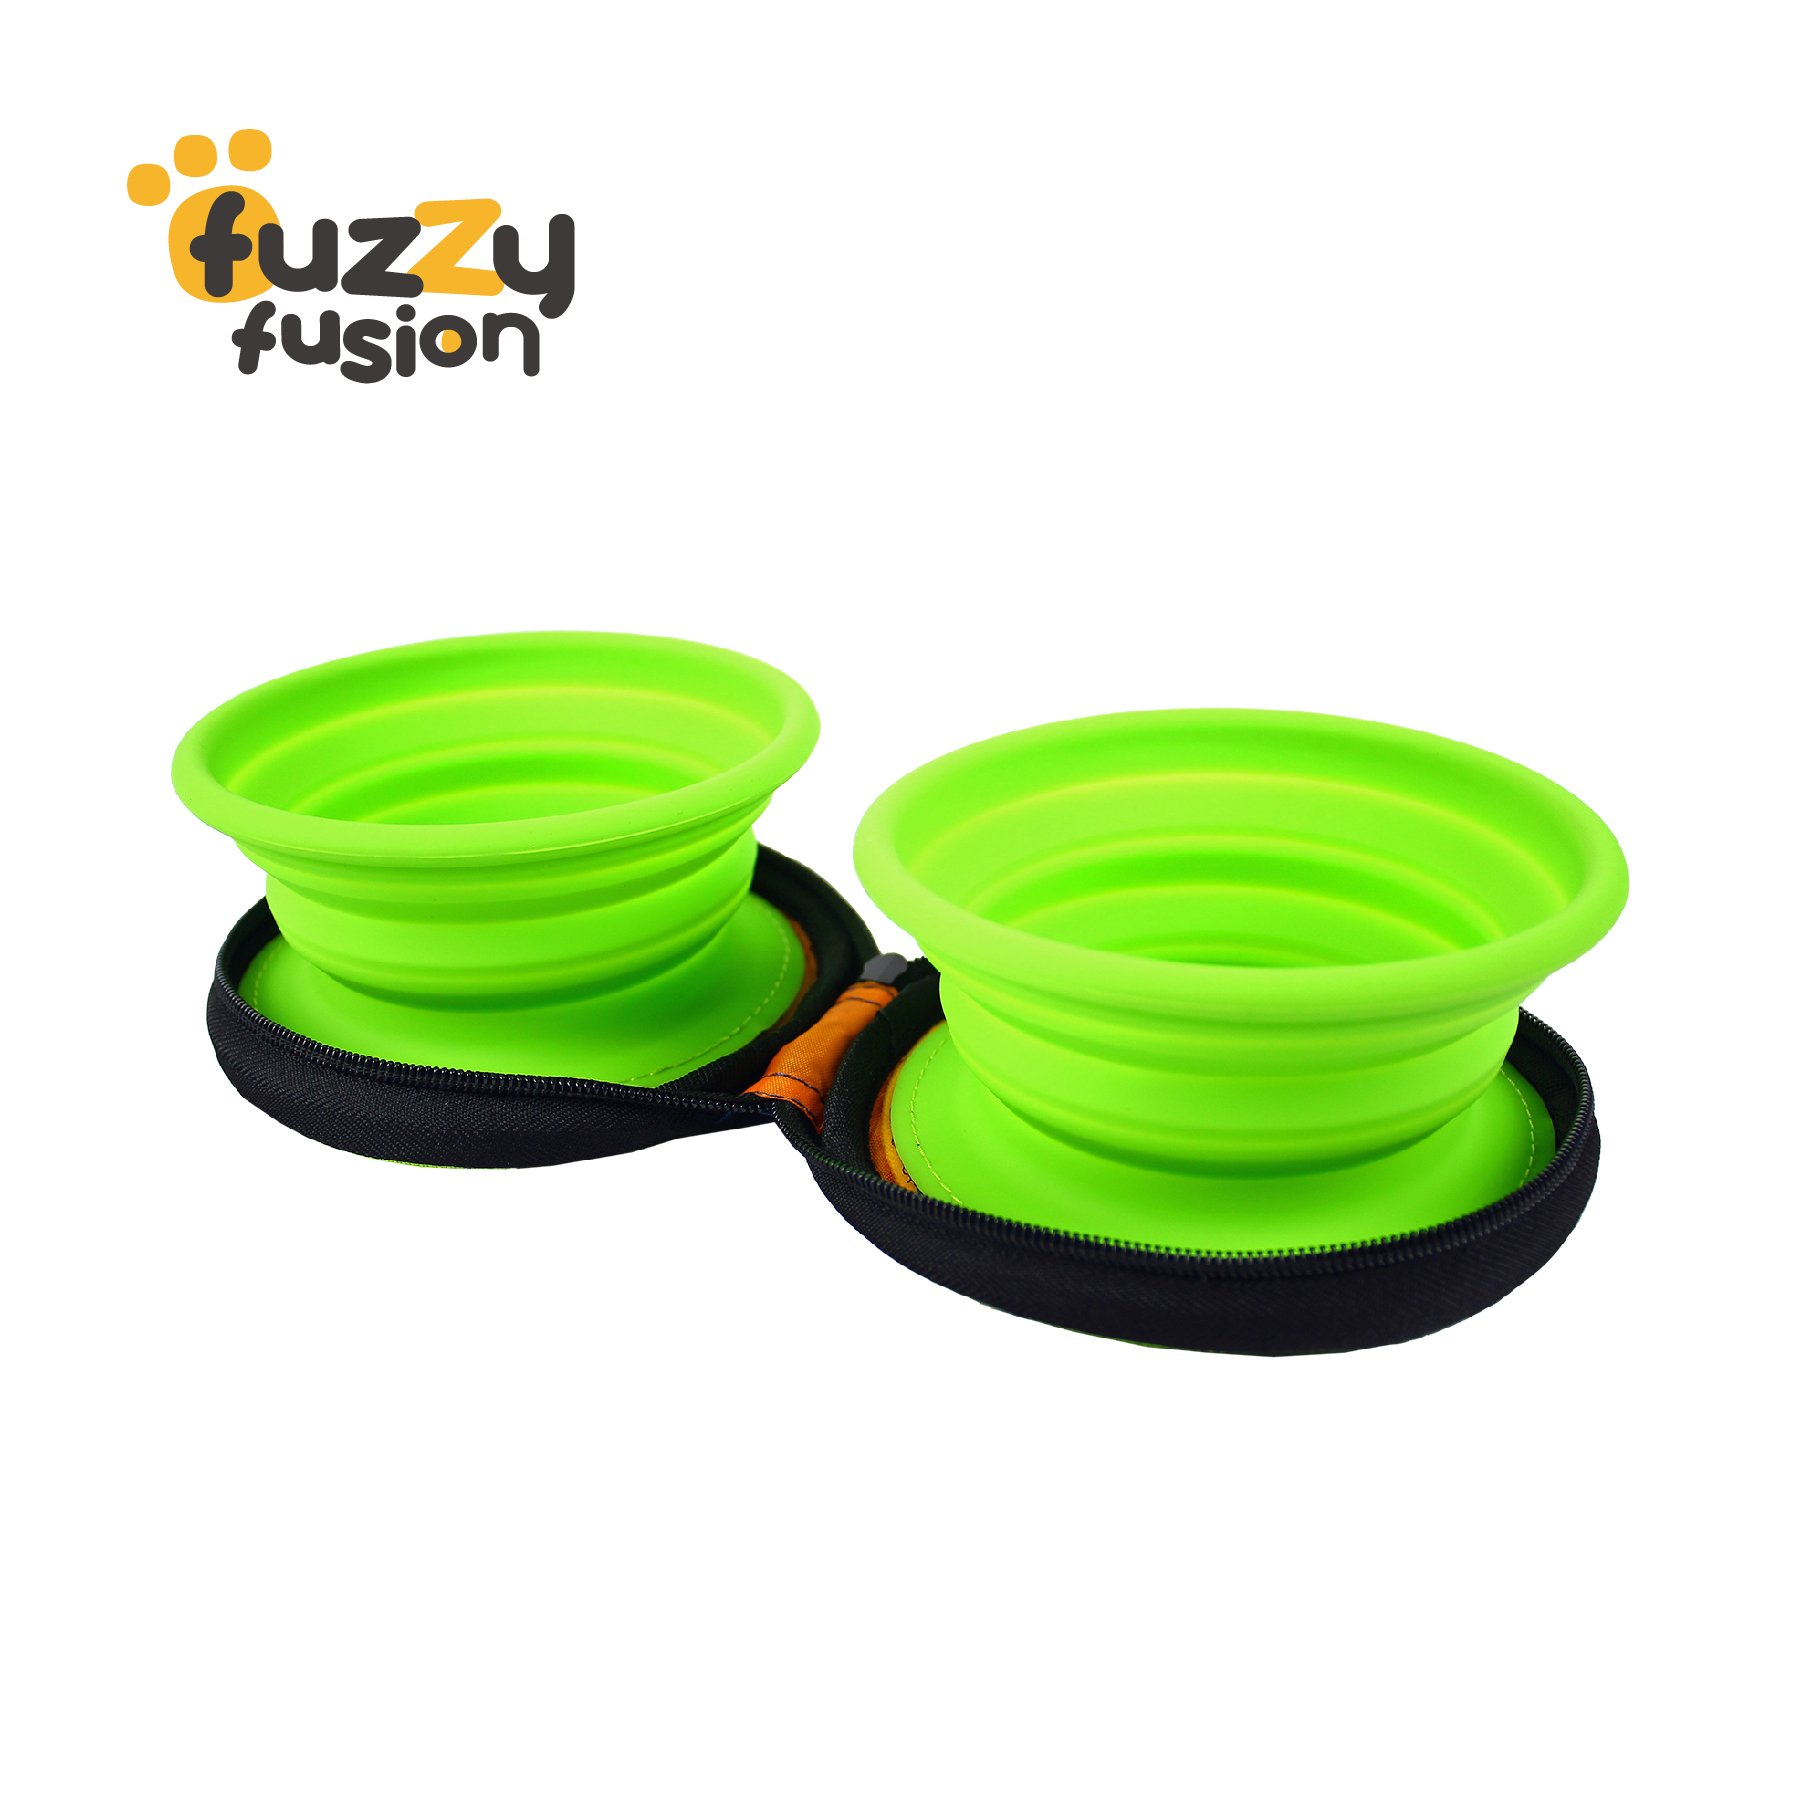 Grand Fusion Housewares Double Silicone Pet Bowl Set with Carry Case - Ideal for travel, hikes, and walks